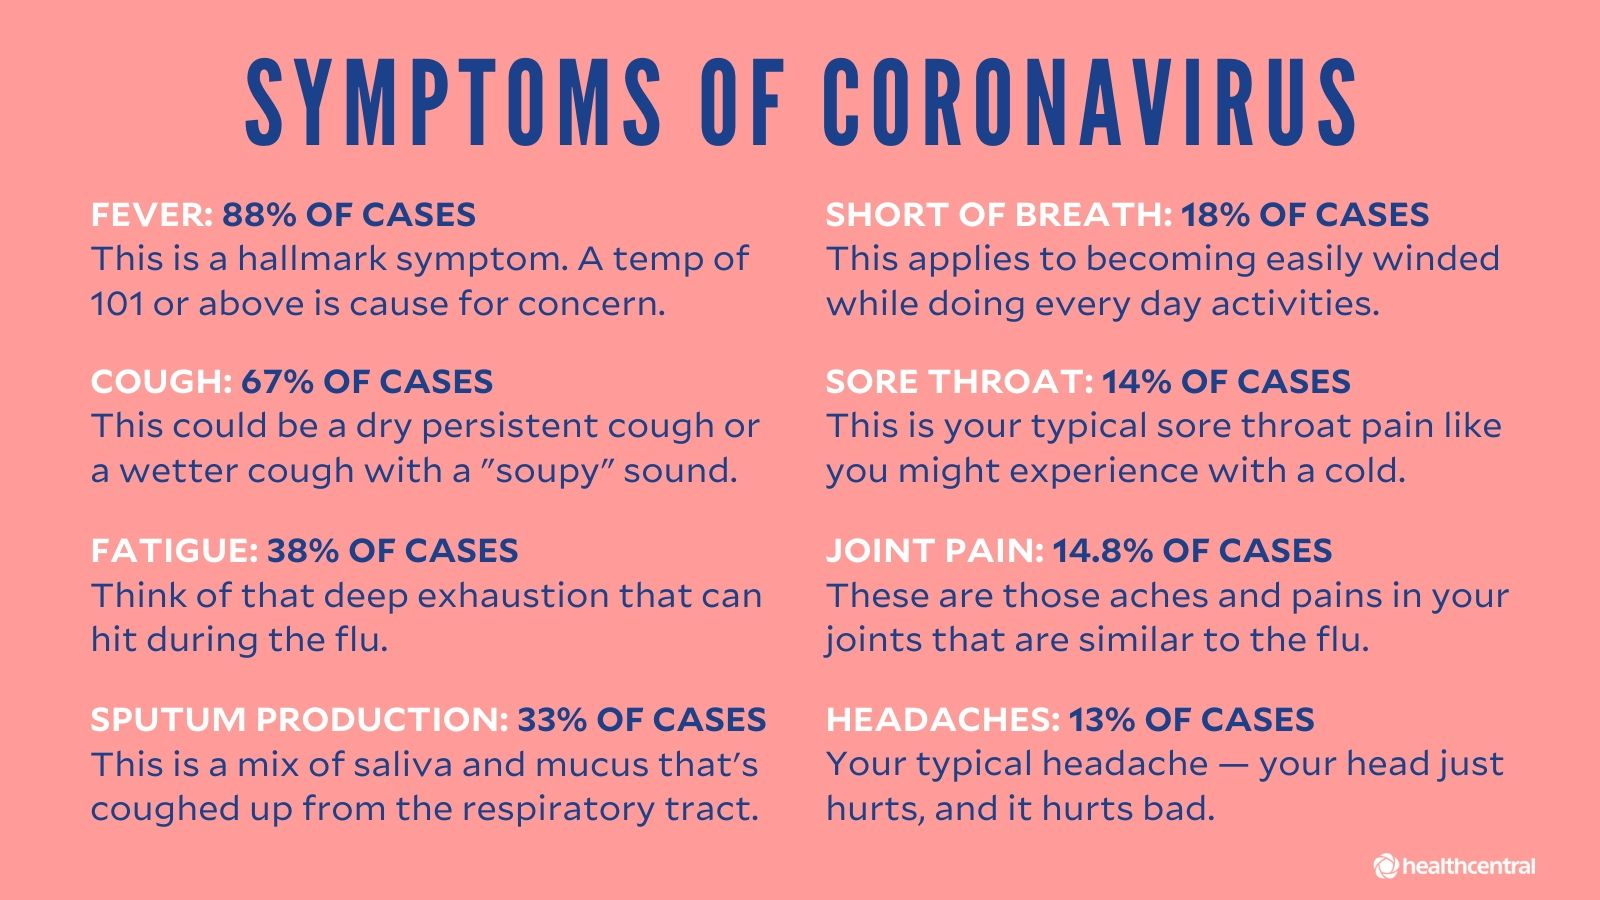 Coronavirus Signs, Symptoms, FAQs, and Treatments